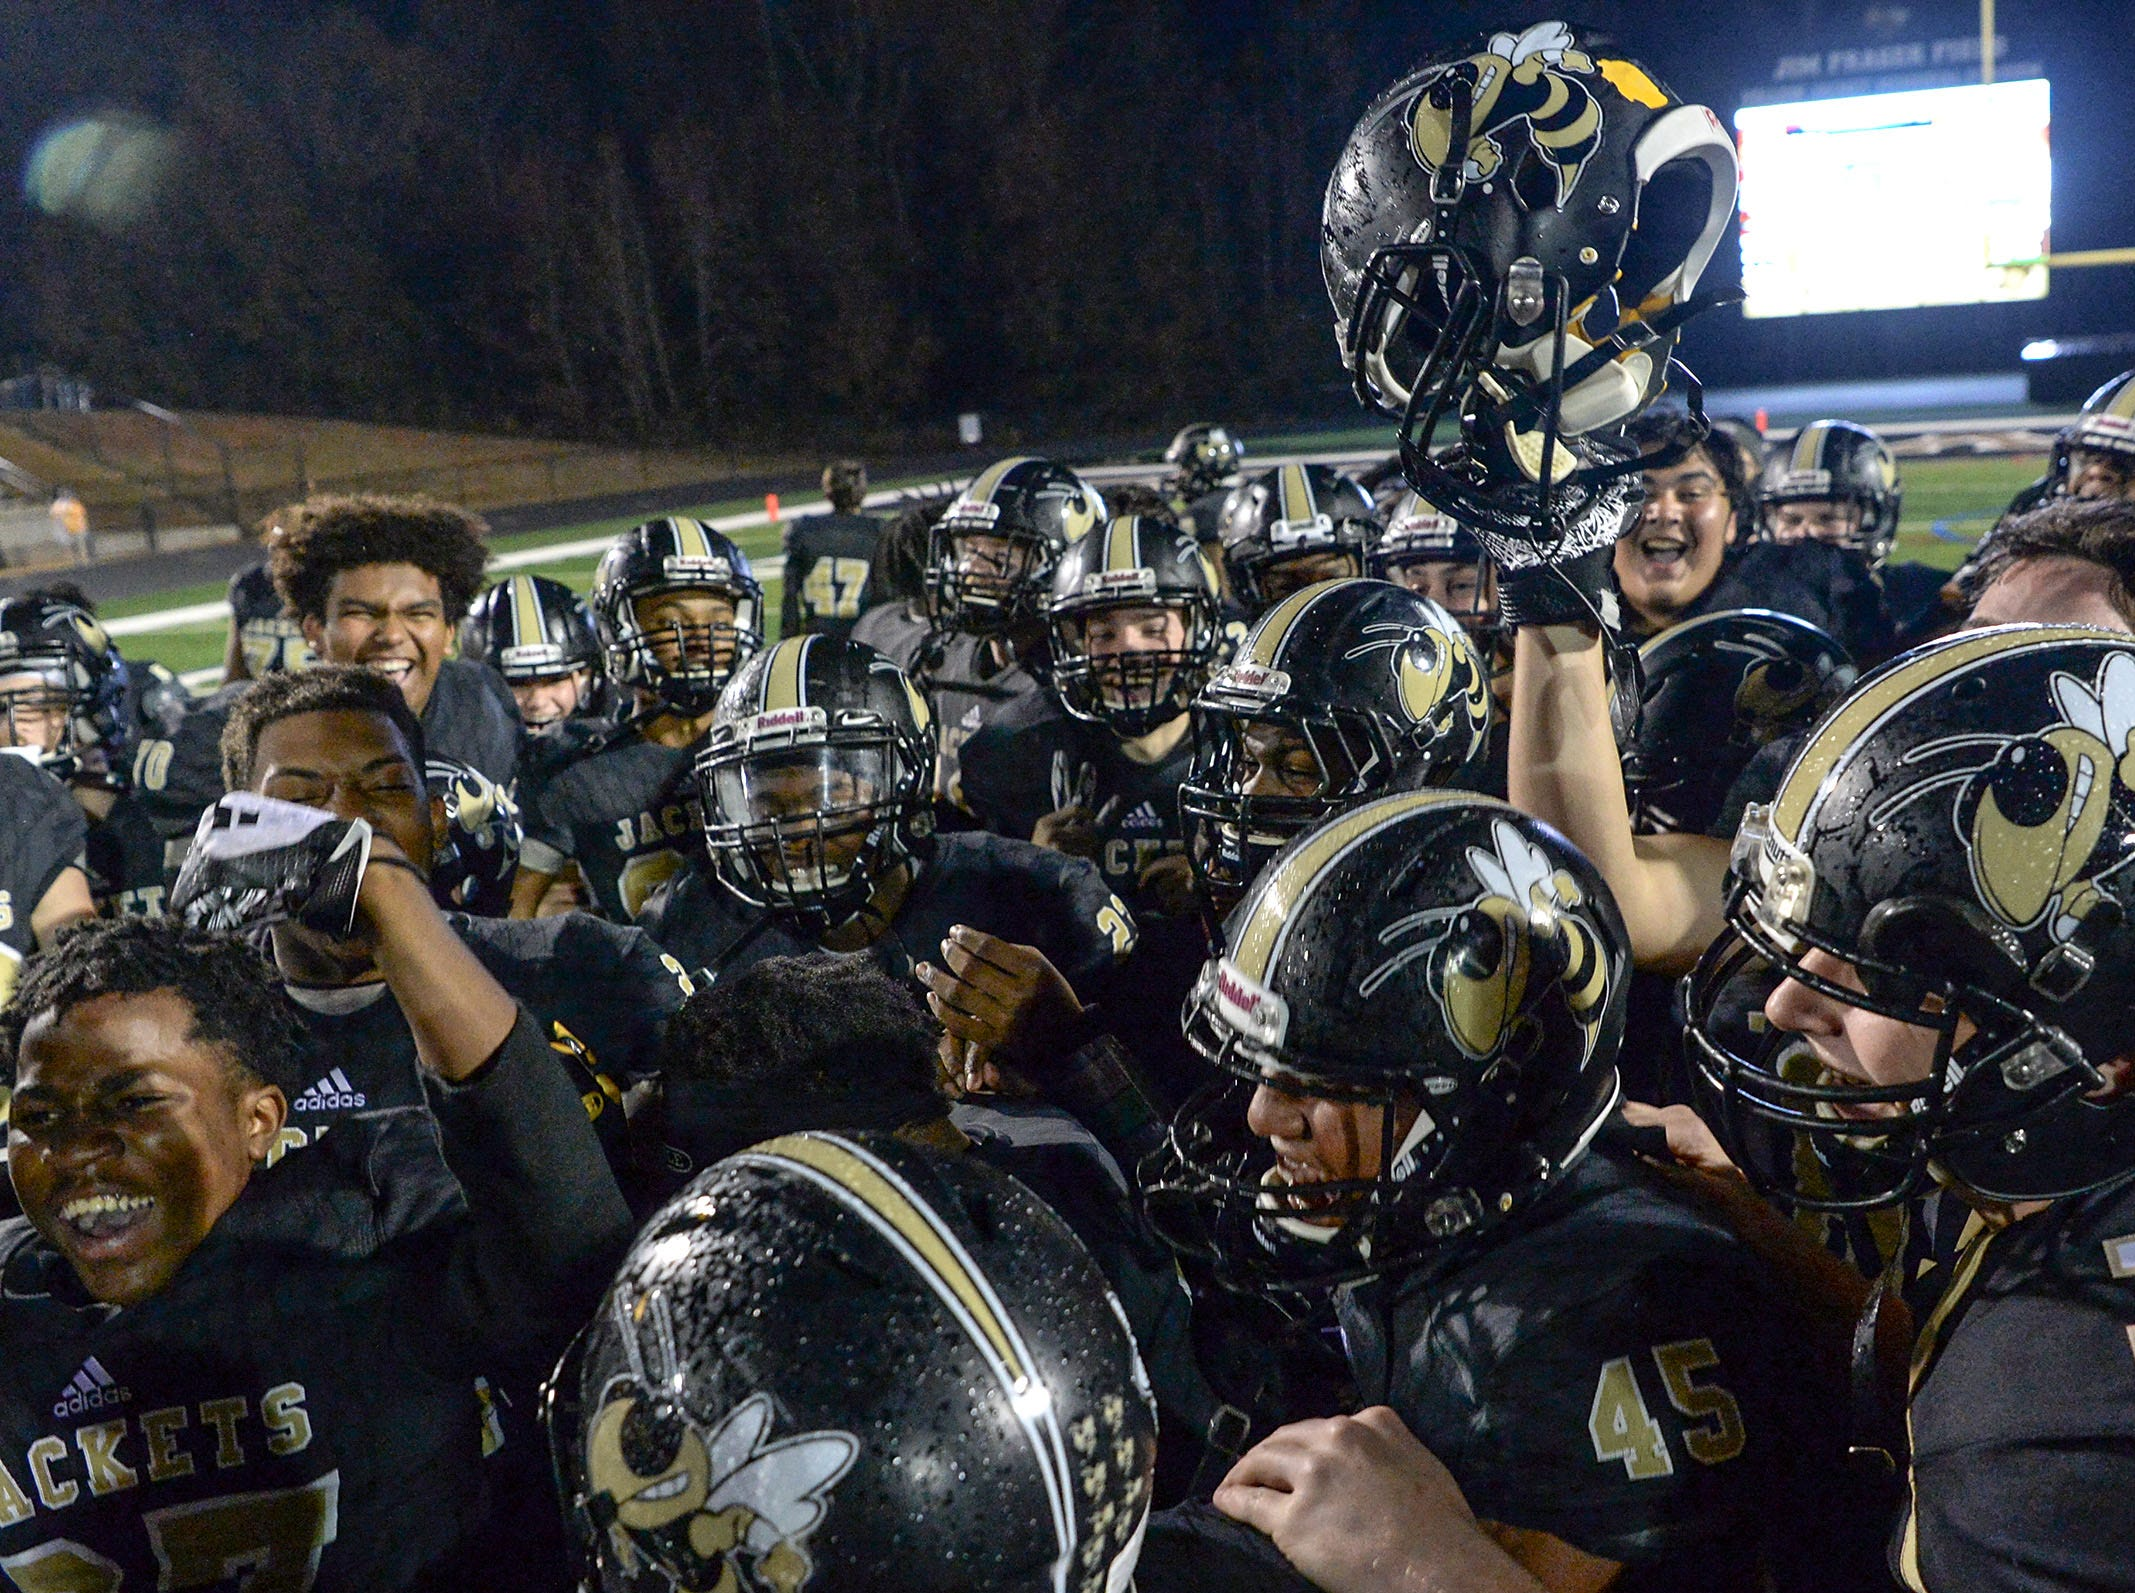 TL Hanna High School players celebrate their win over Byrnes High School after the game of the Class AAAAA state playoffs at TL Hanna High School in Anderson on Friday, November 30, 2018.